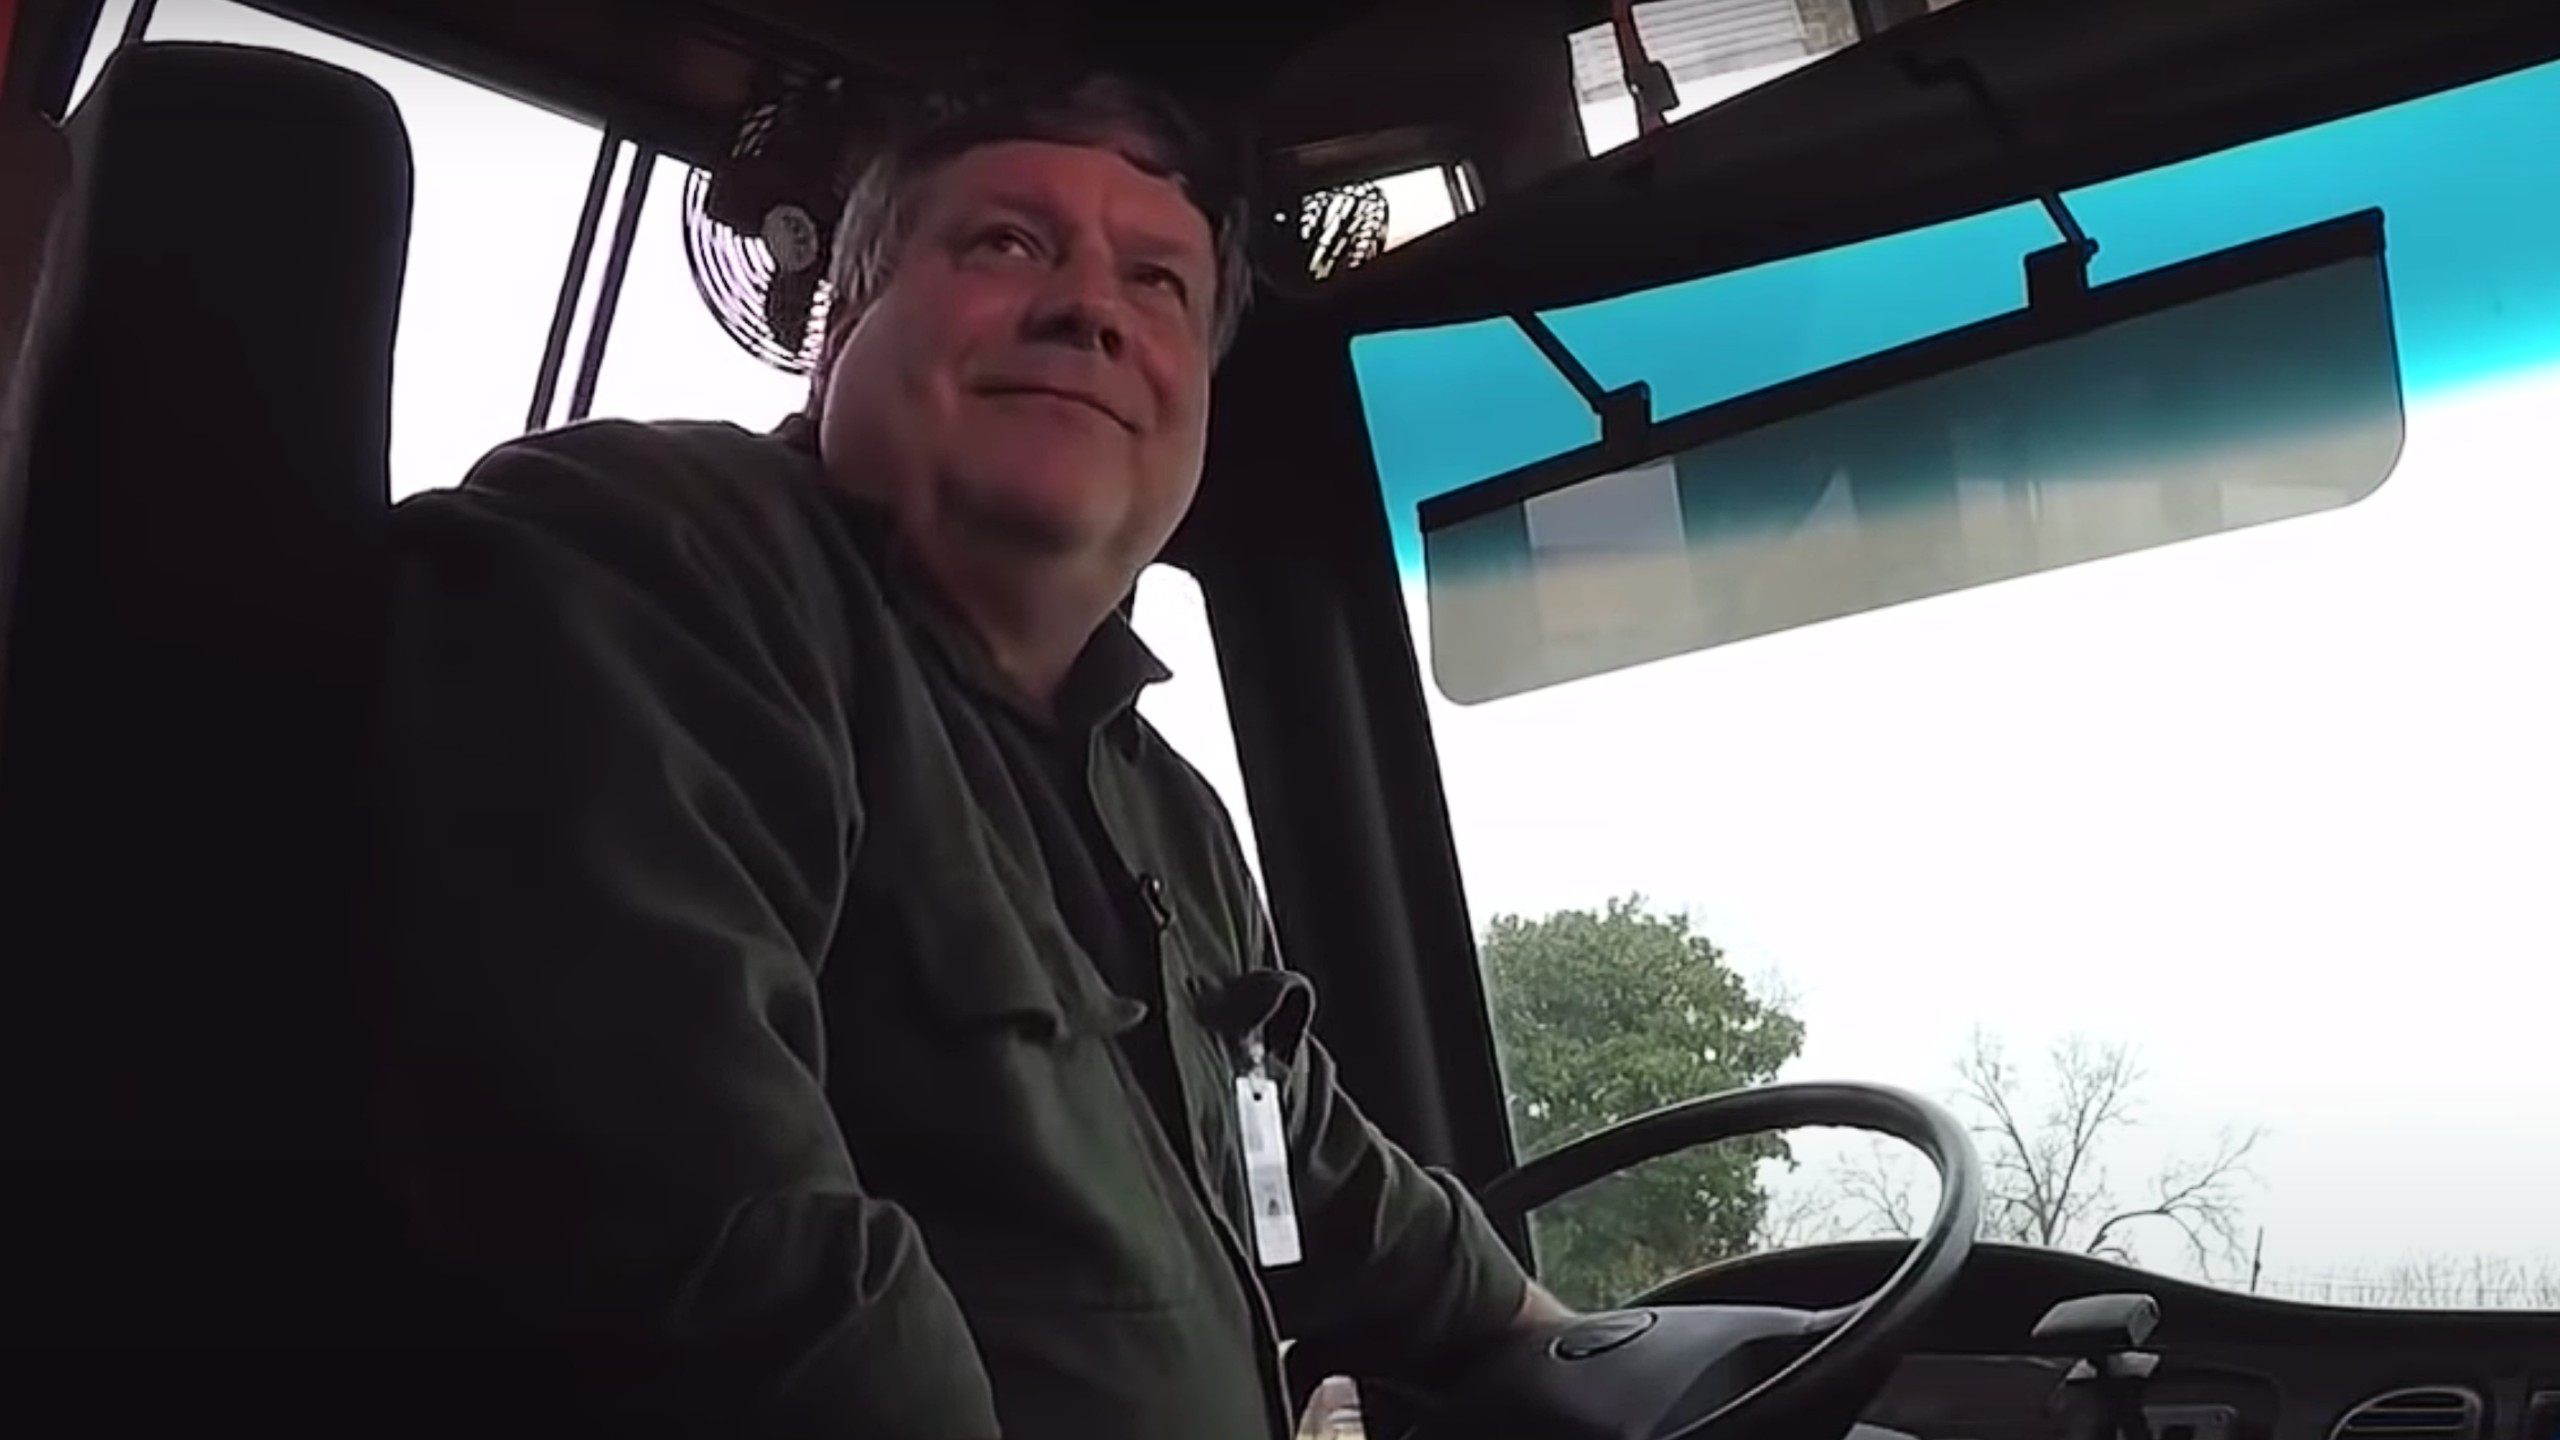 Bus driver buys 50 breakfasts so students wouldn't be hungry